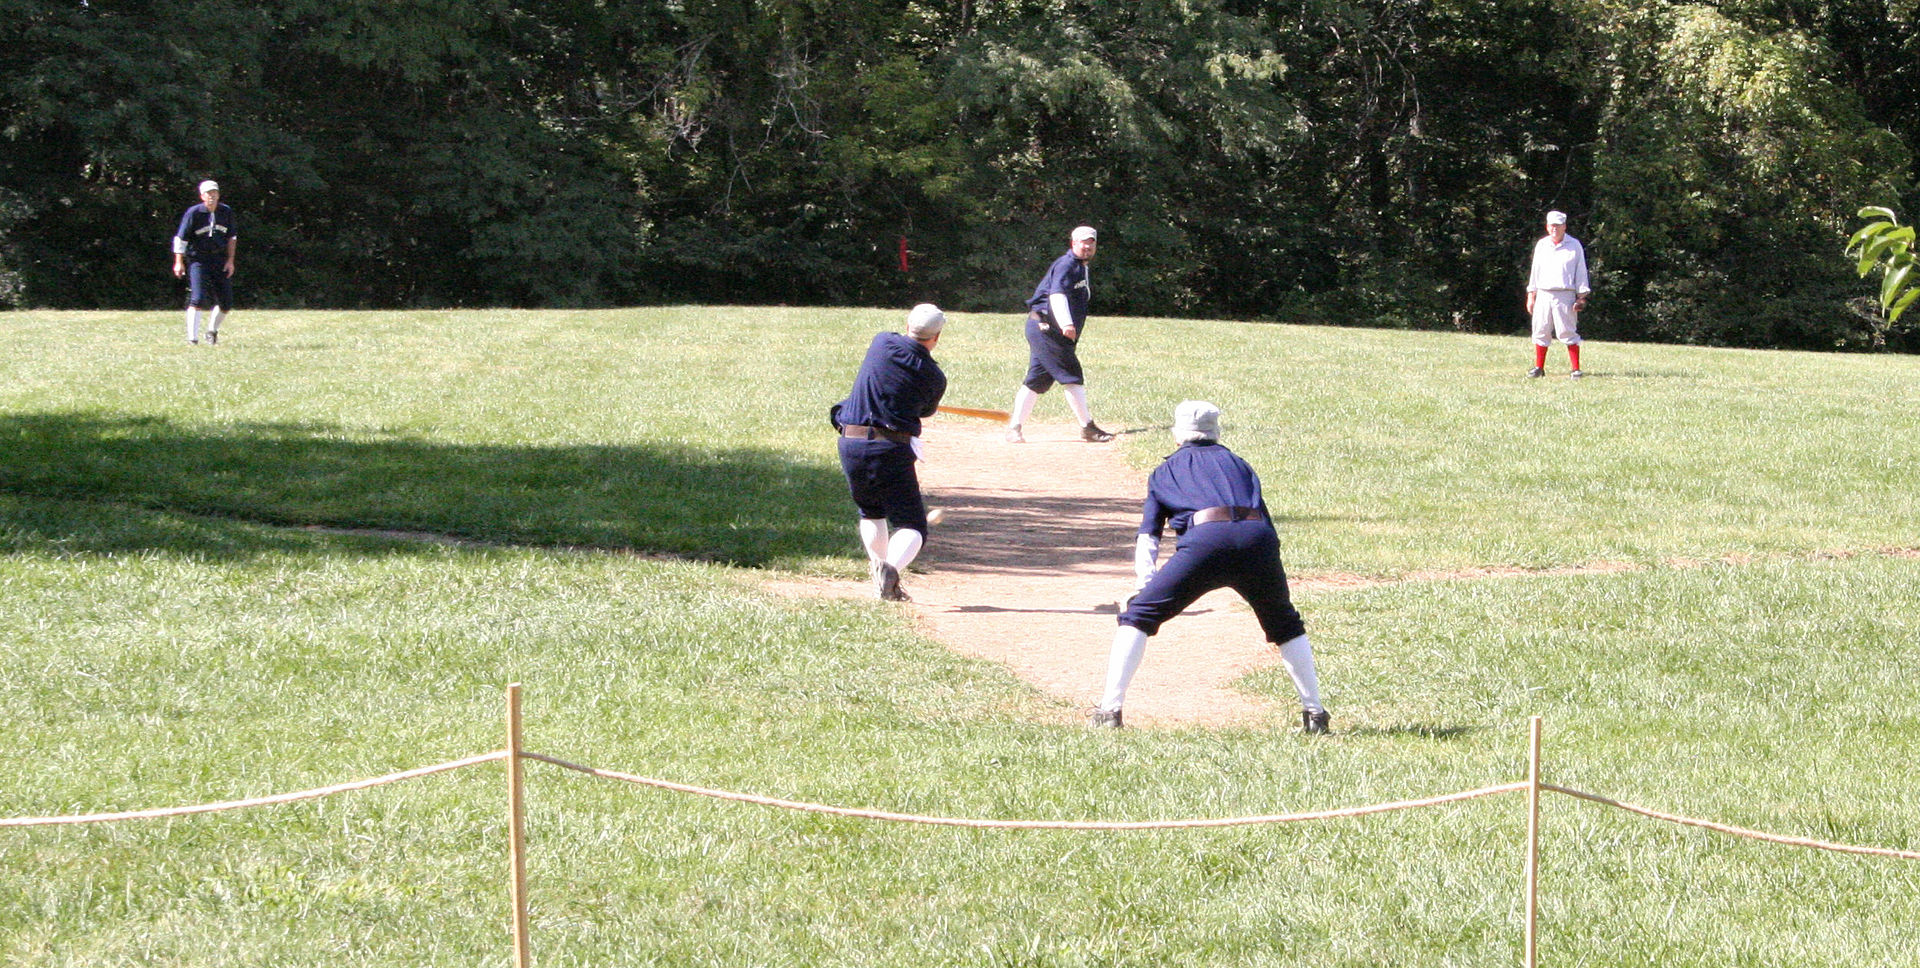 1886 Baseball demonstration at the park